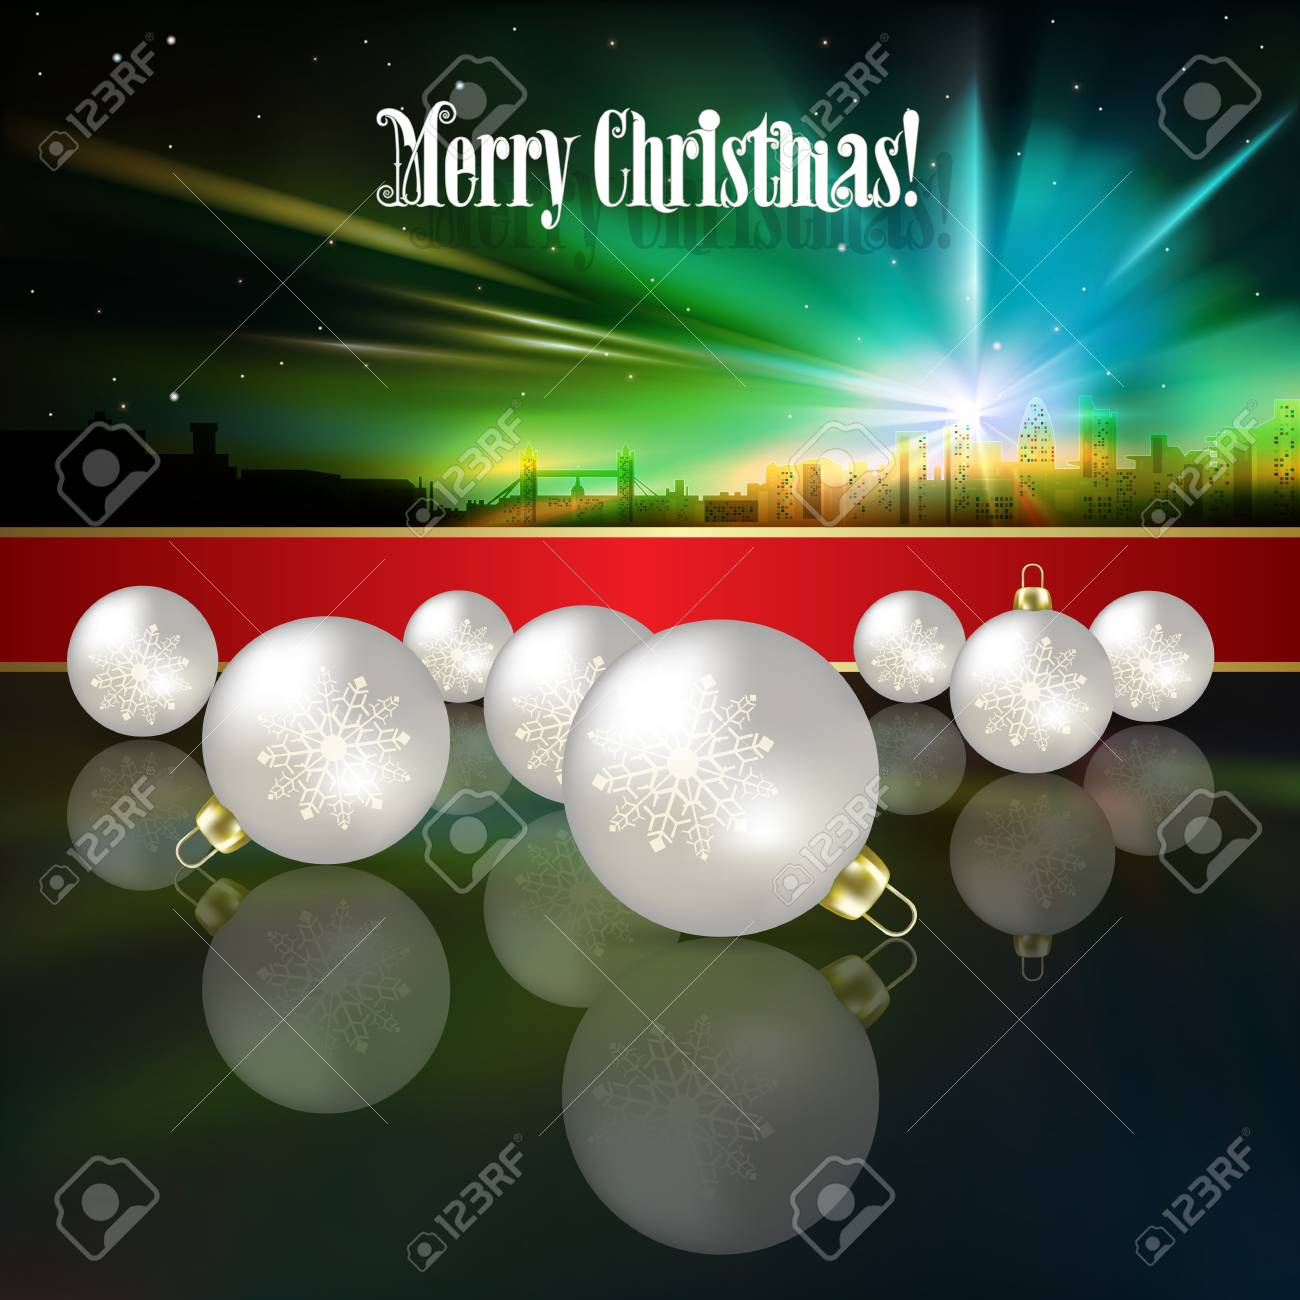 Abstract celebration background with white Christmas decorations and silhouette of London Stock Vector - 21425719